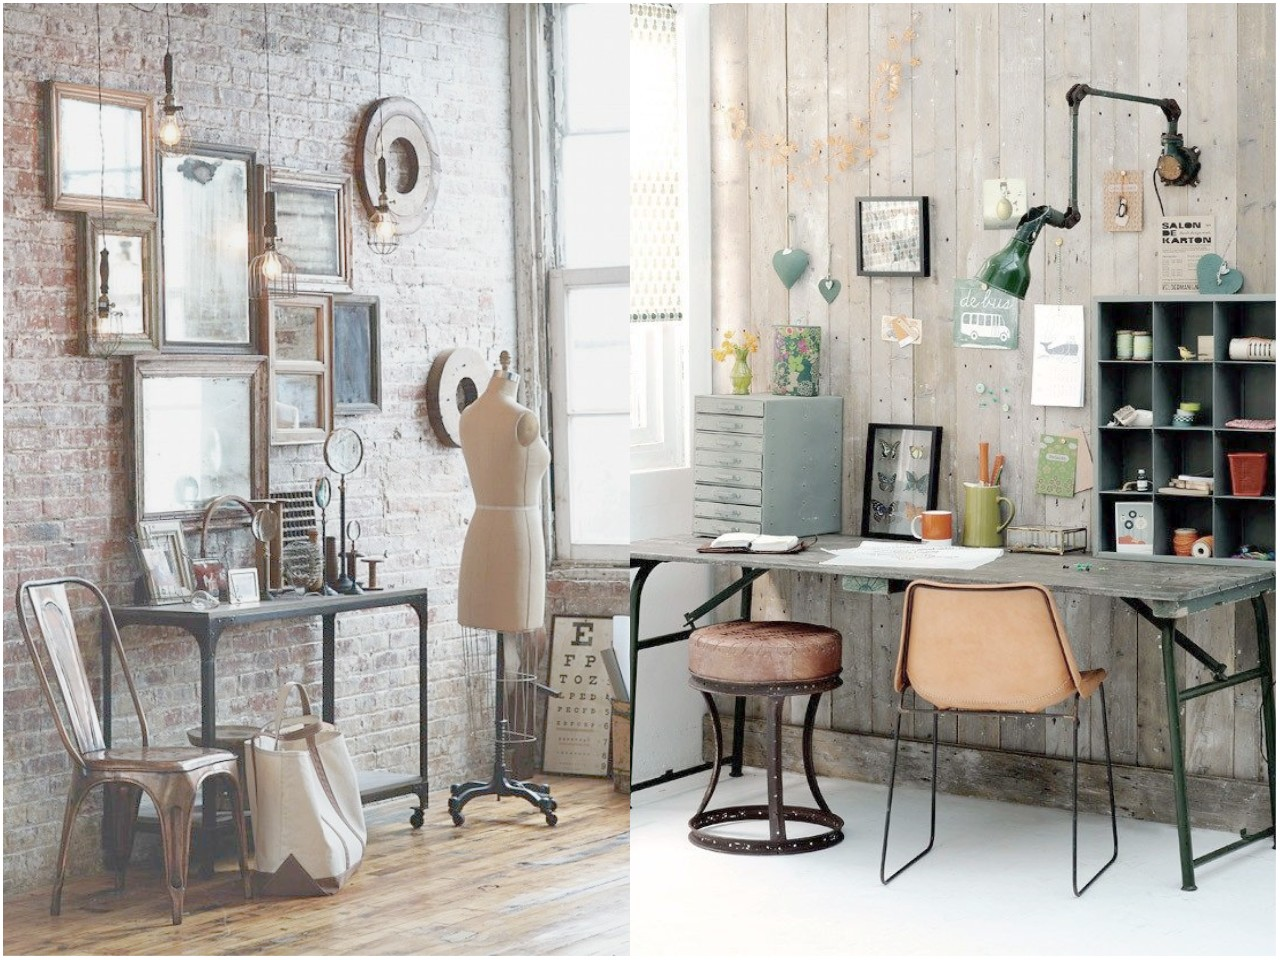 6 claves para una decoraci n vintage industrial - Decoracion industrial vintage ...